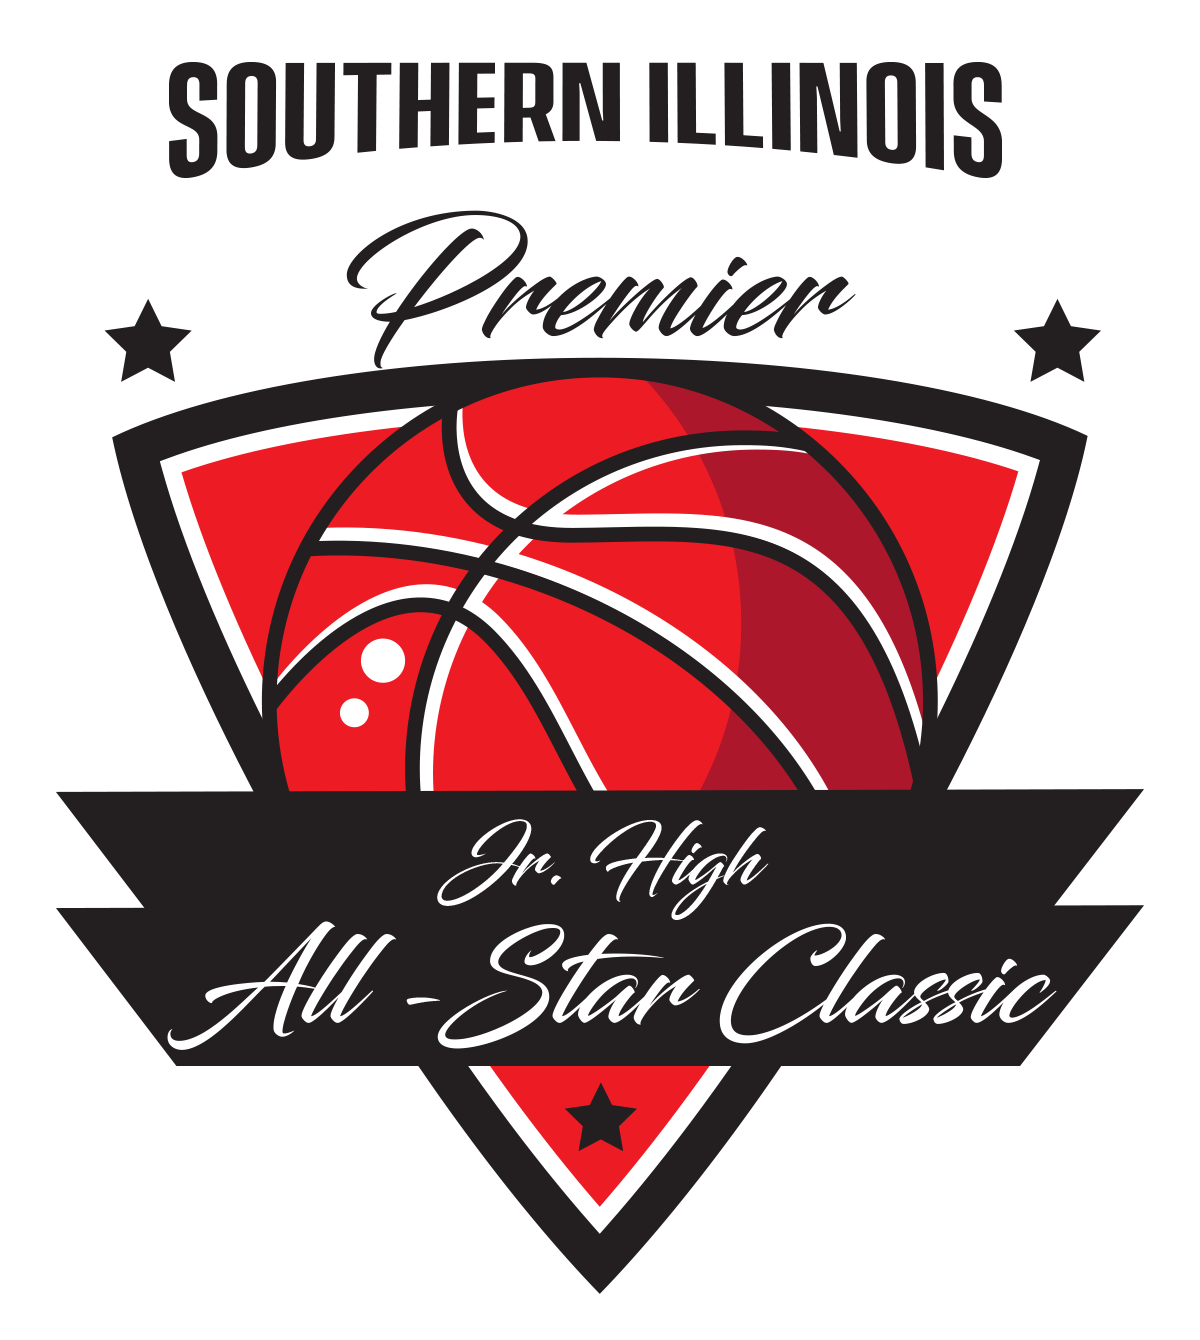 Southern Illinois Premier Jr. High All-Star Classic logo